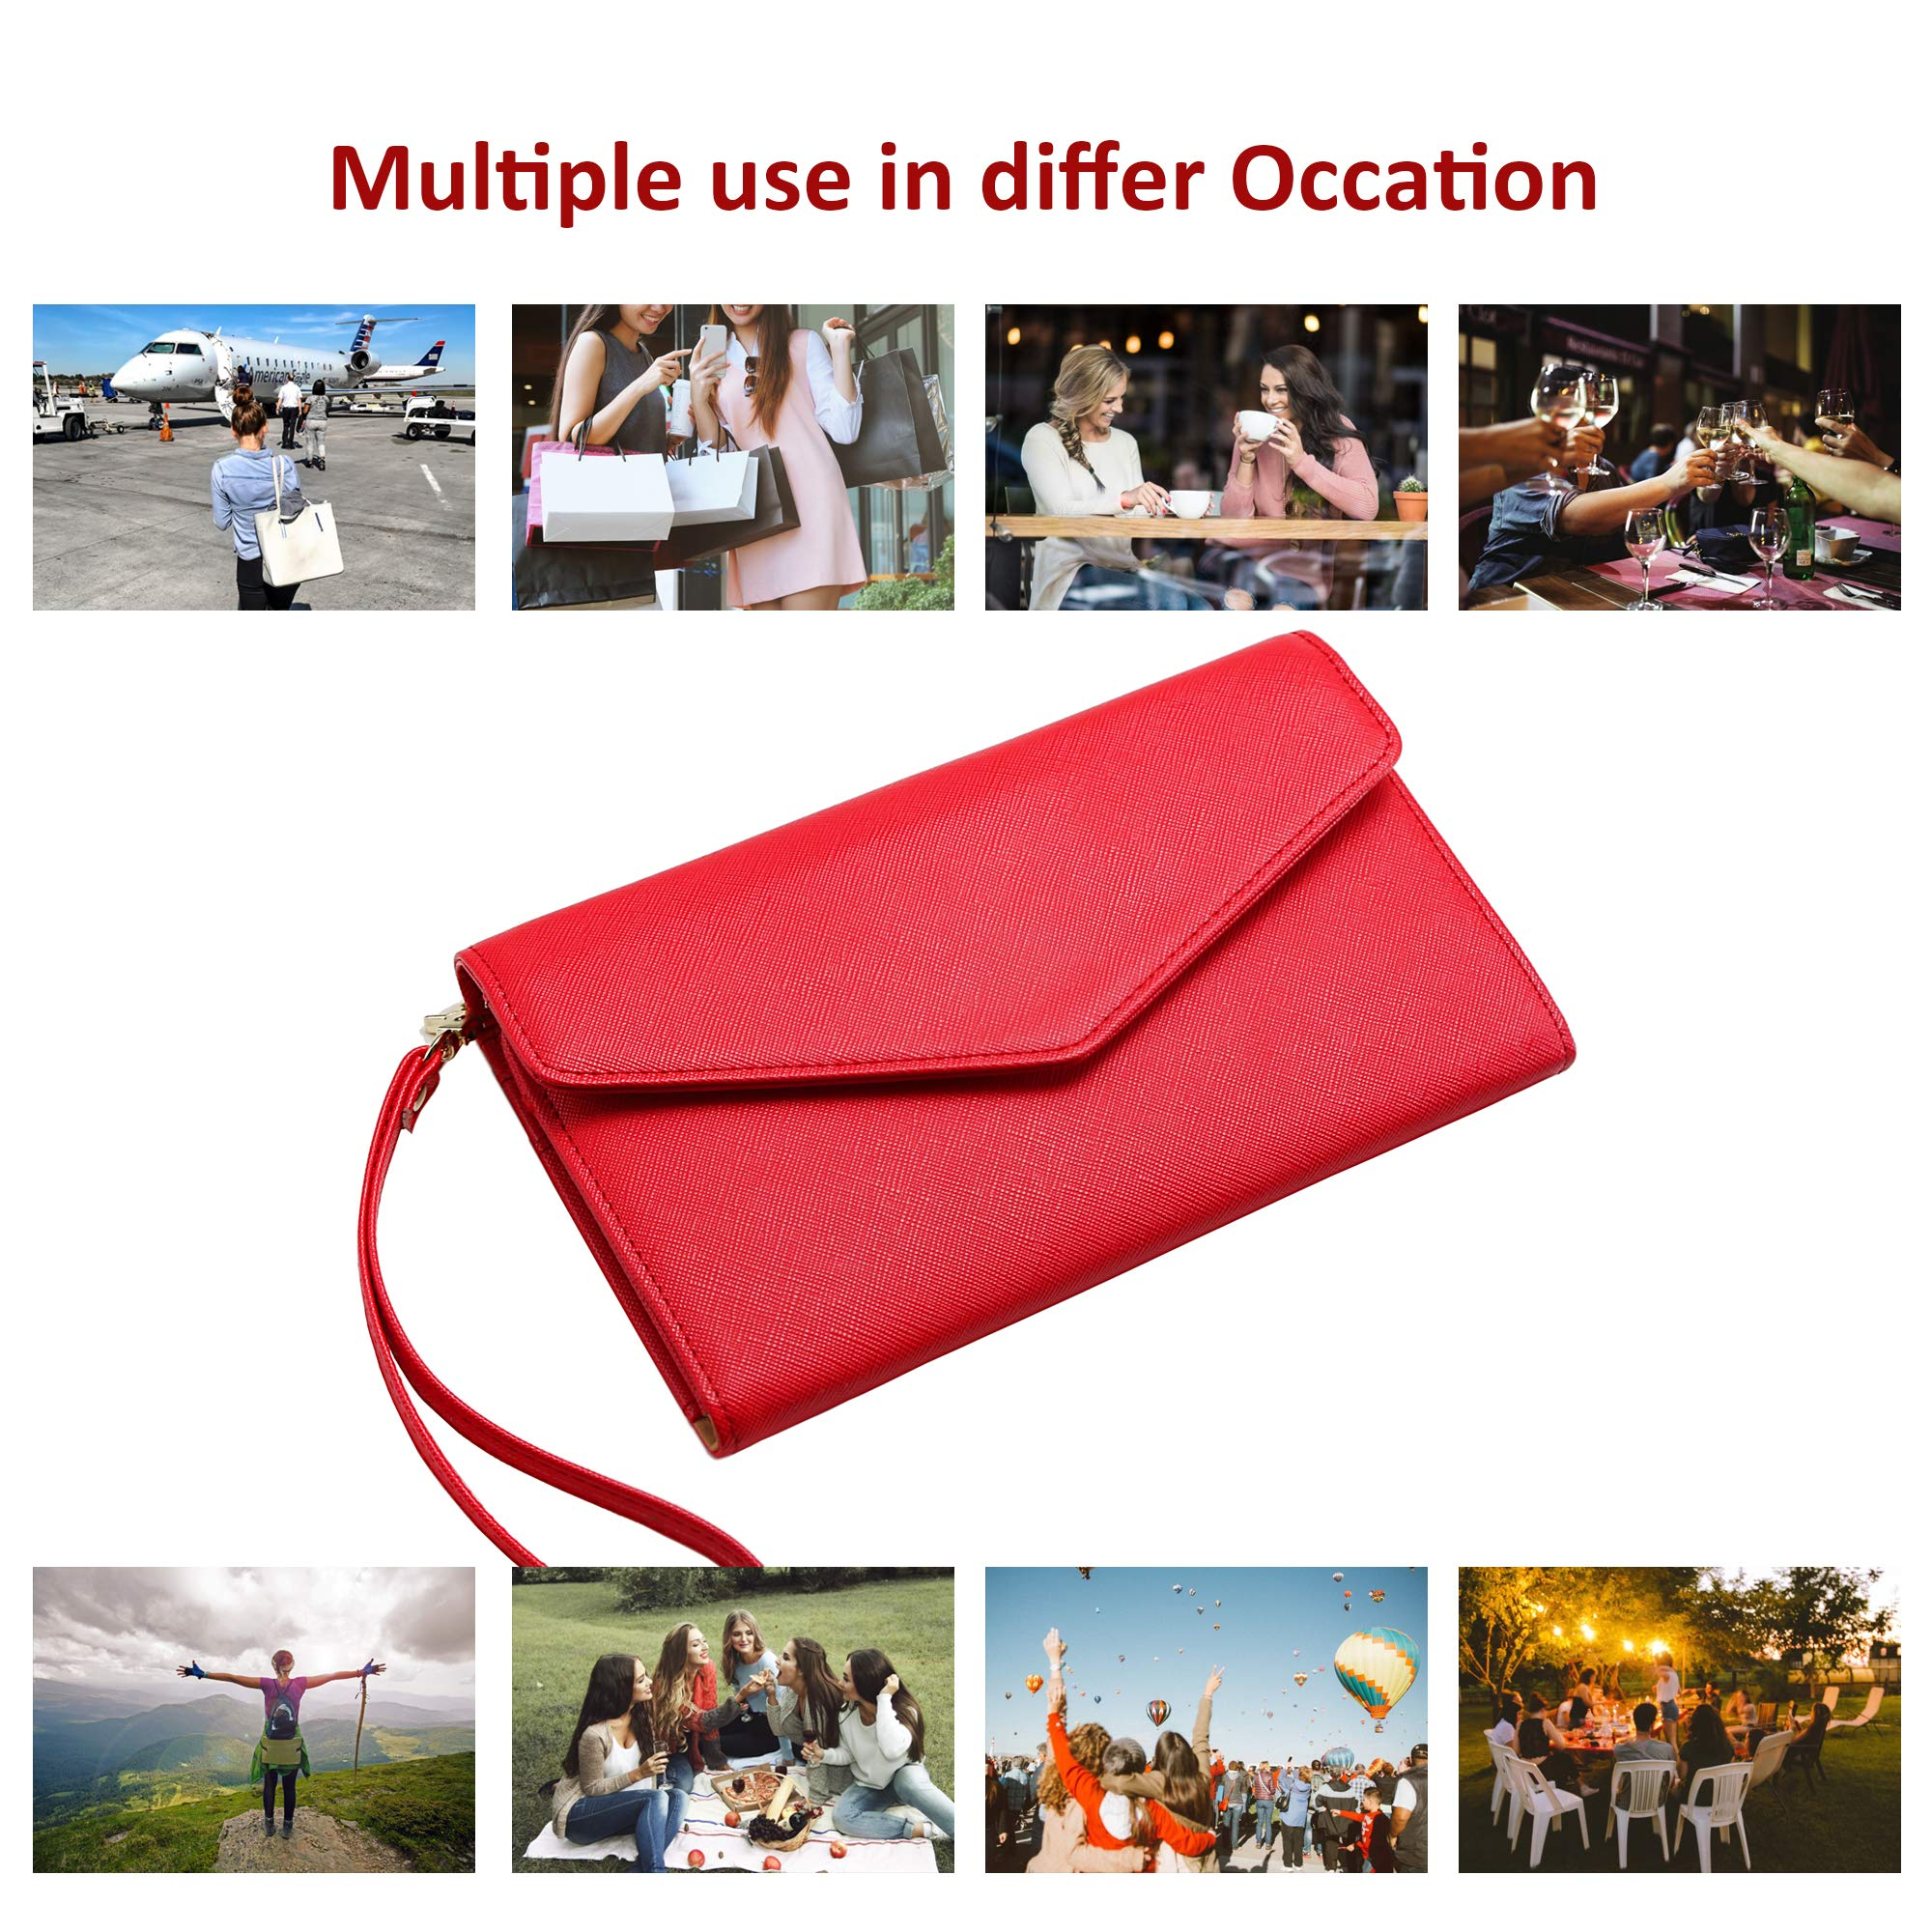 Krosslon Travel Passport Wallet for Women Rfid Wristlet Slim Family Document Holder, 11# Agate Red by KROSSLON (Image #7)